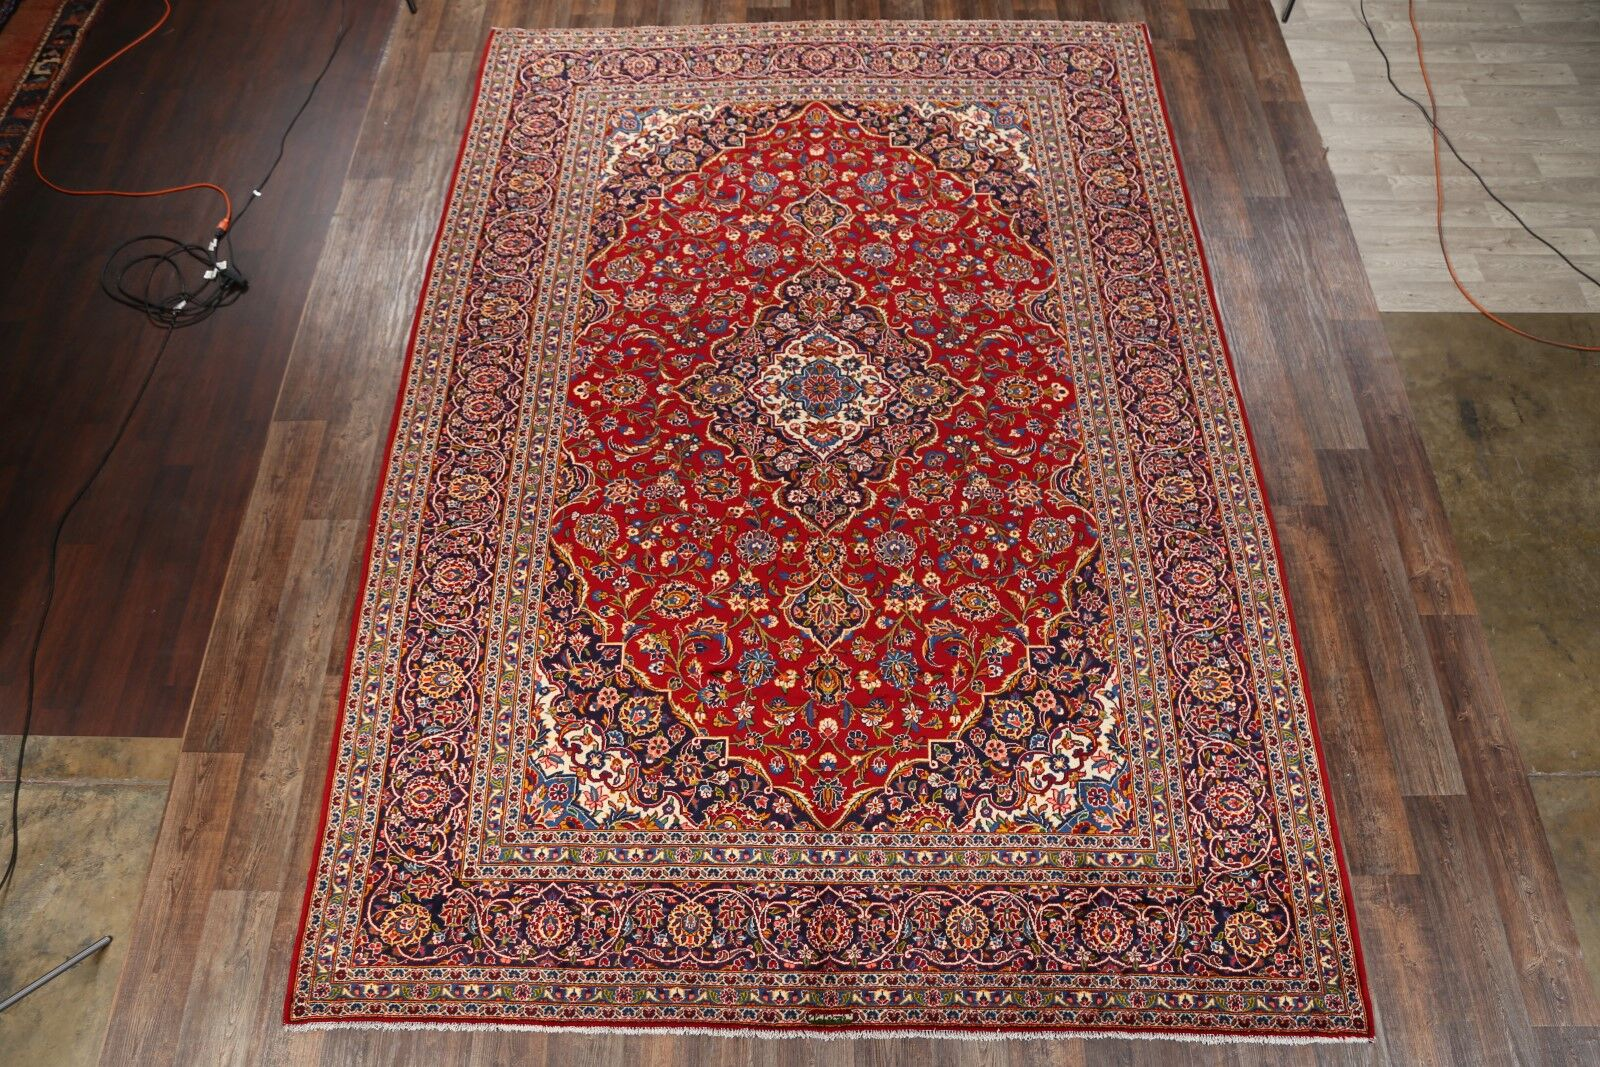 One-of-a-Kind Kashan Persian Vintage Hand-Knotted 9'8